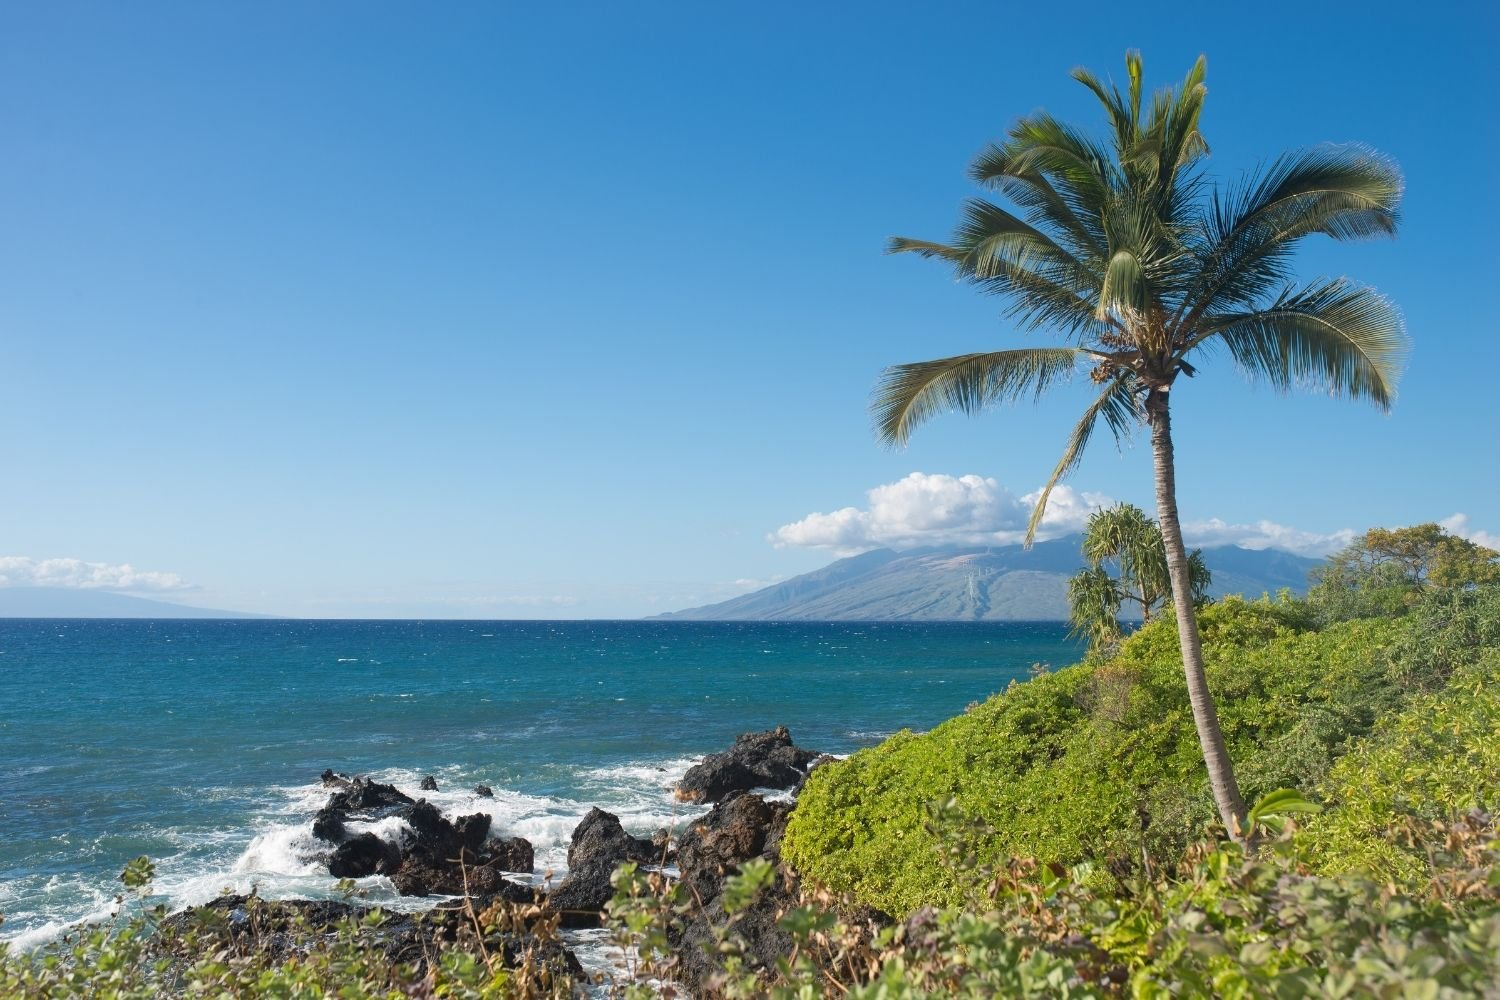 Maui Island landscape with palm tree and ocean